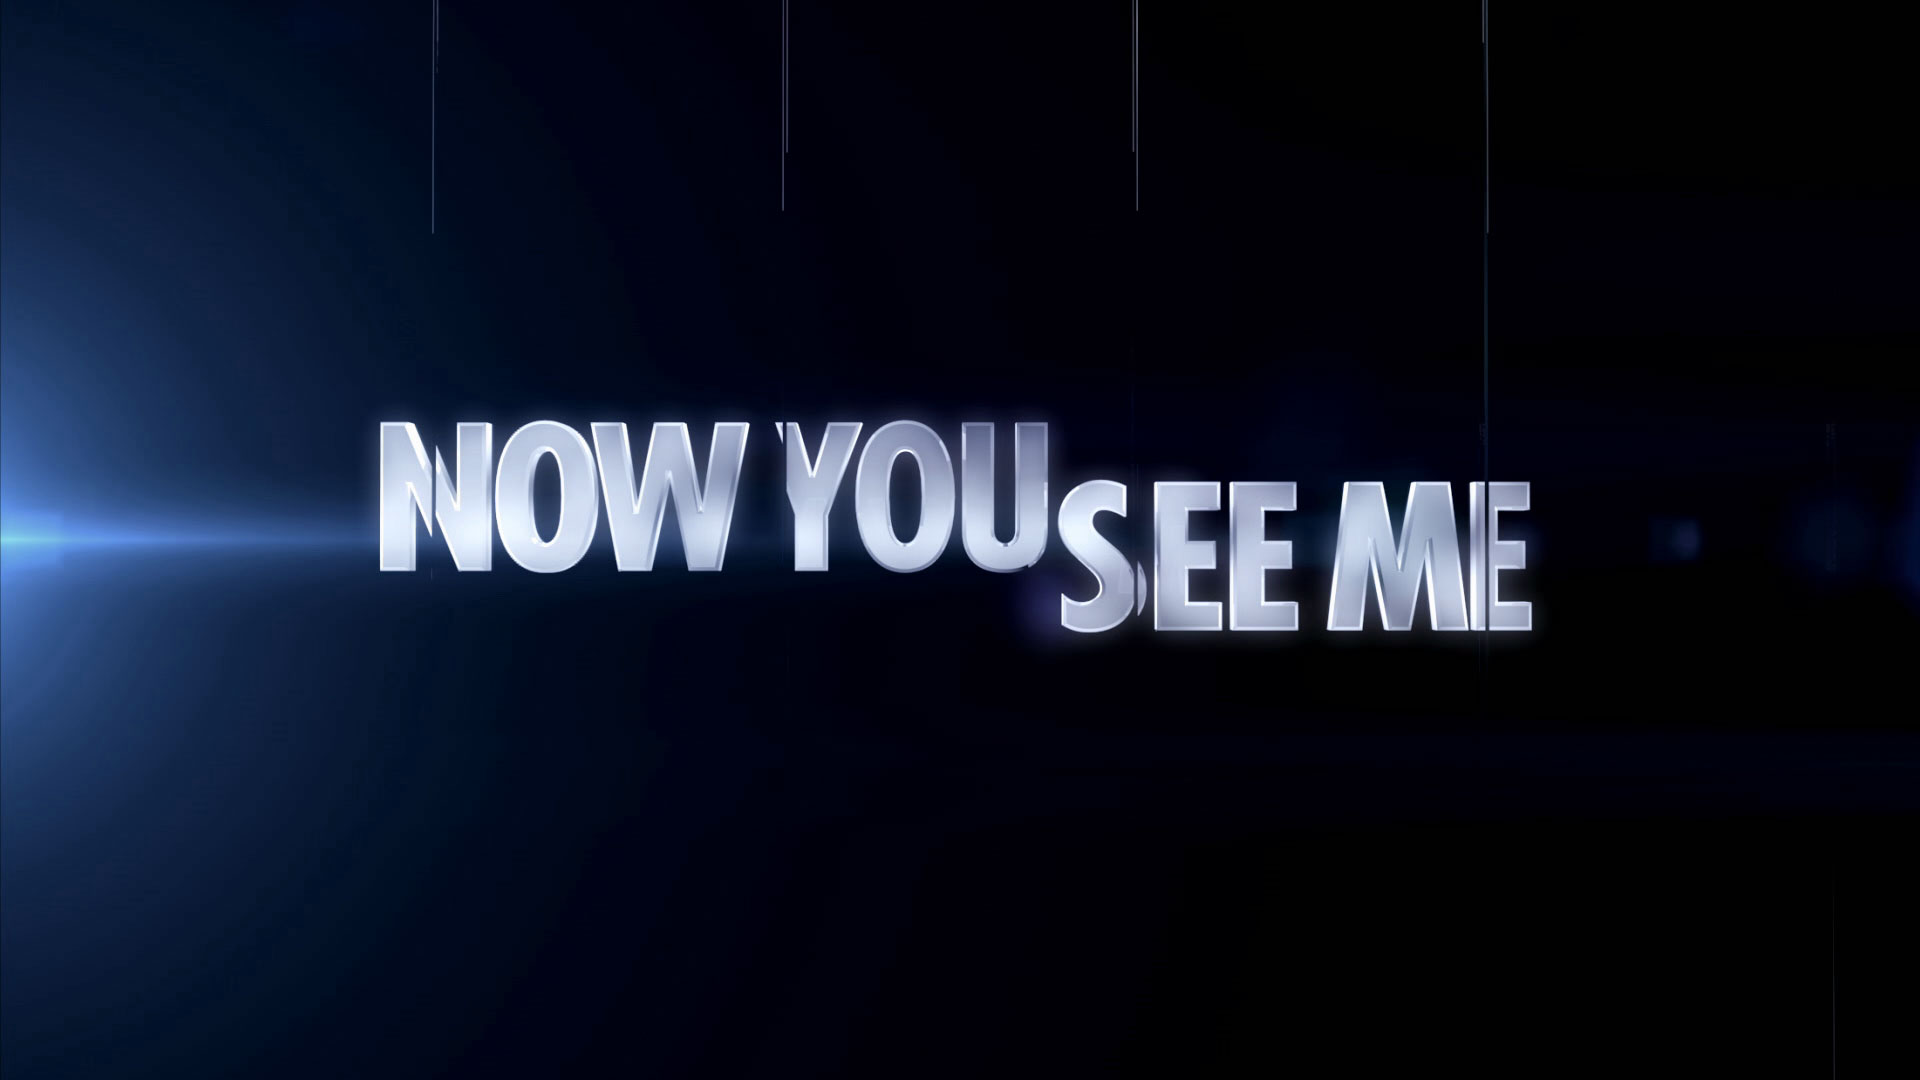 Now You See Me Hd Wallpaper - Darkness , HD Wallpaper & Backgrounds